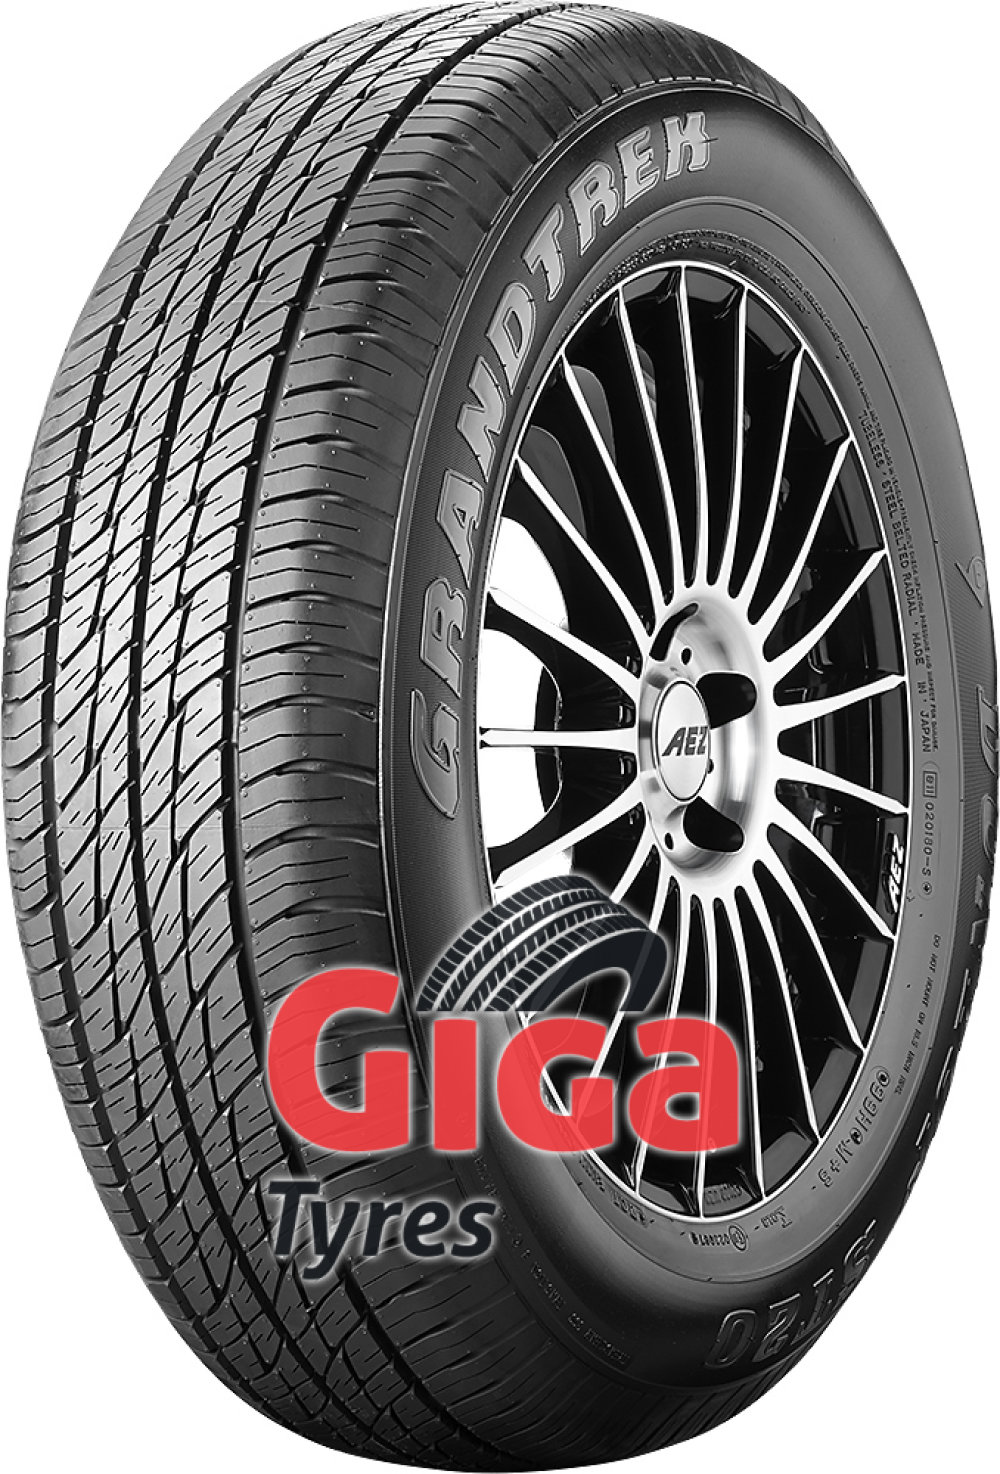 Dunlop Grandtrek ST 20 ( 215/60 R17 96H , with rim protection (MFS) )